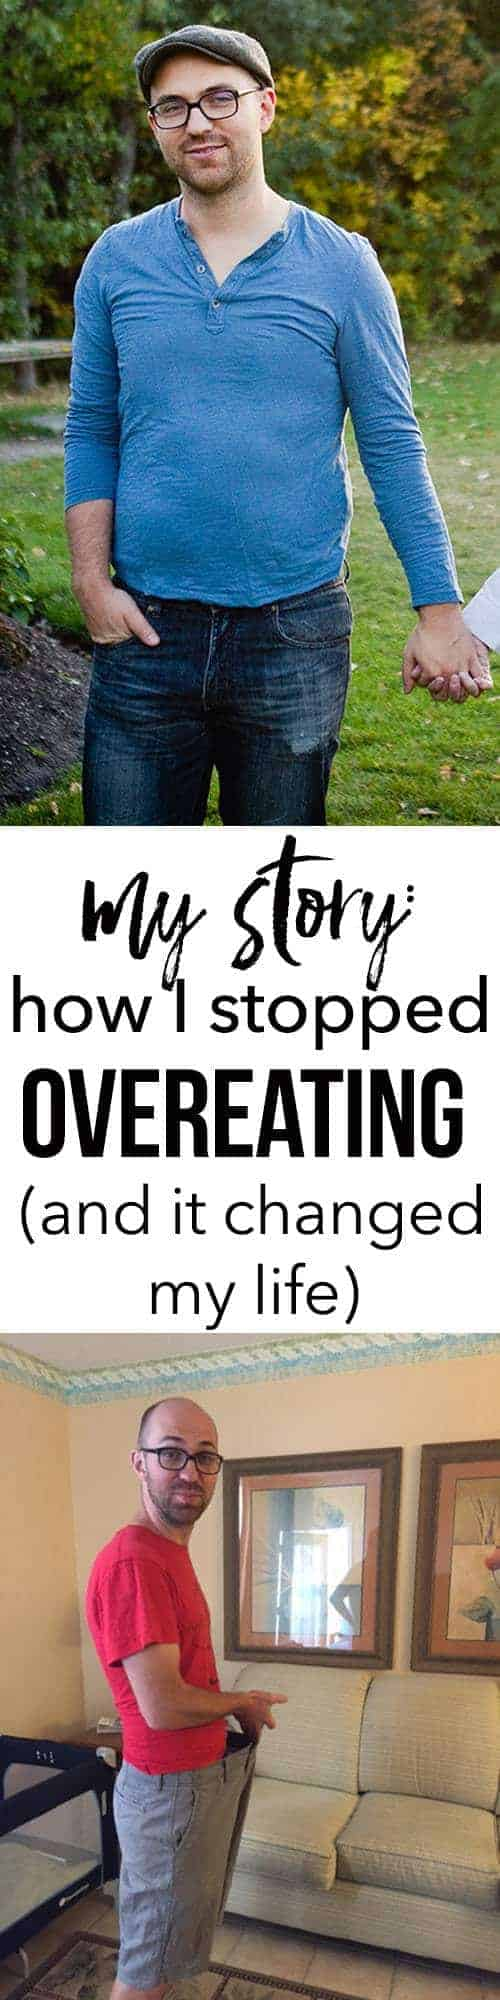 Jeremy My story how I stopped overeating